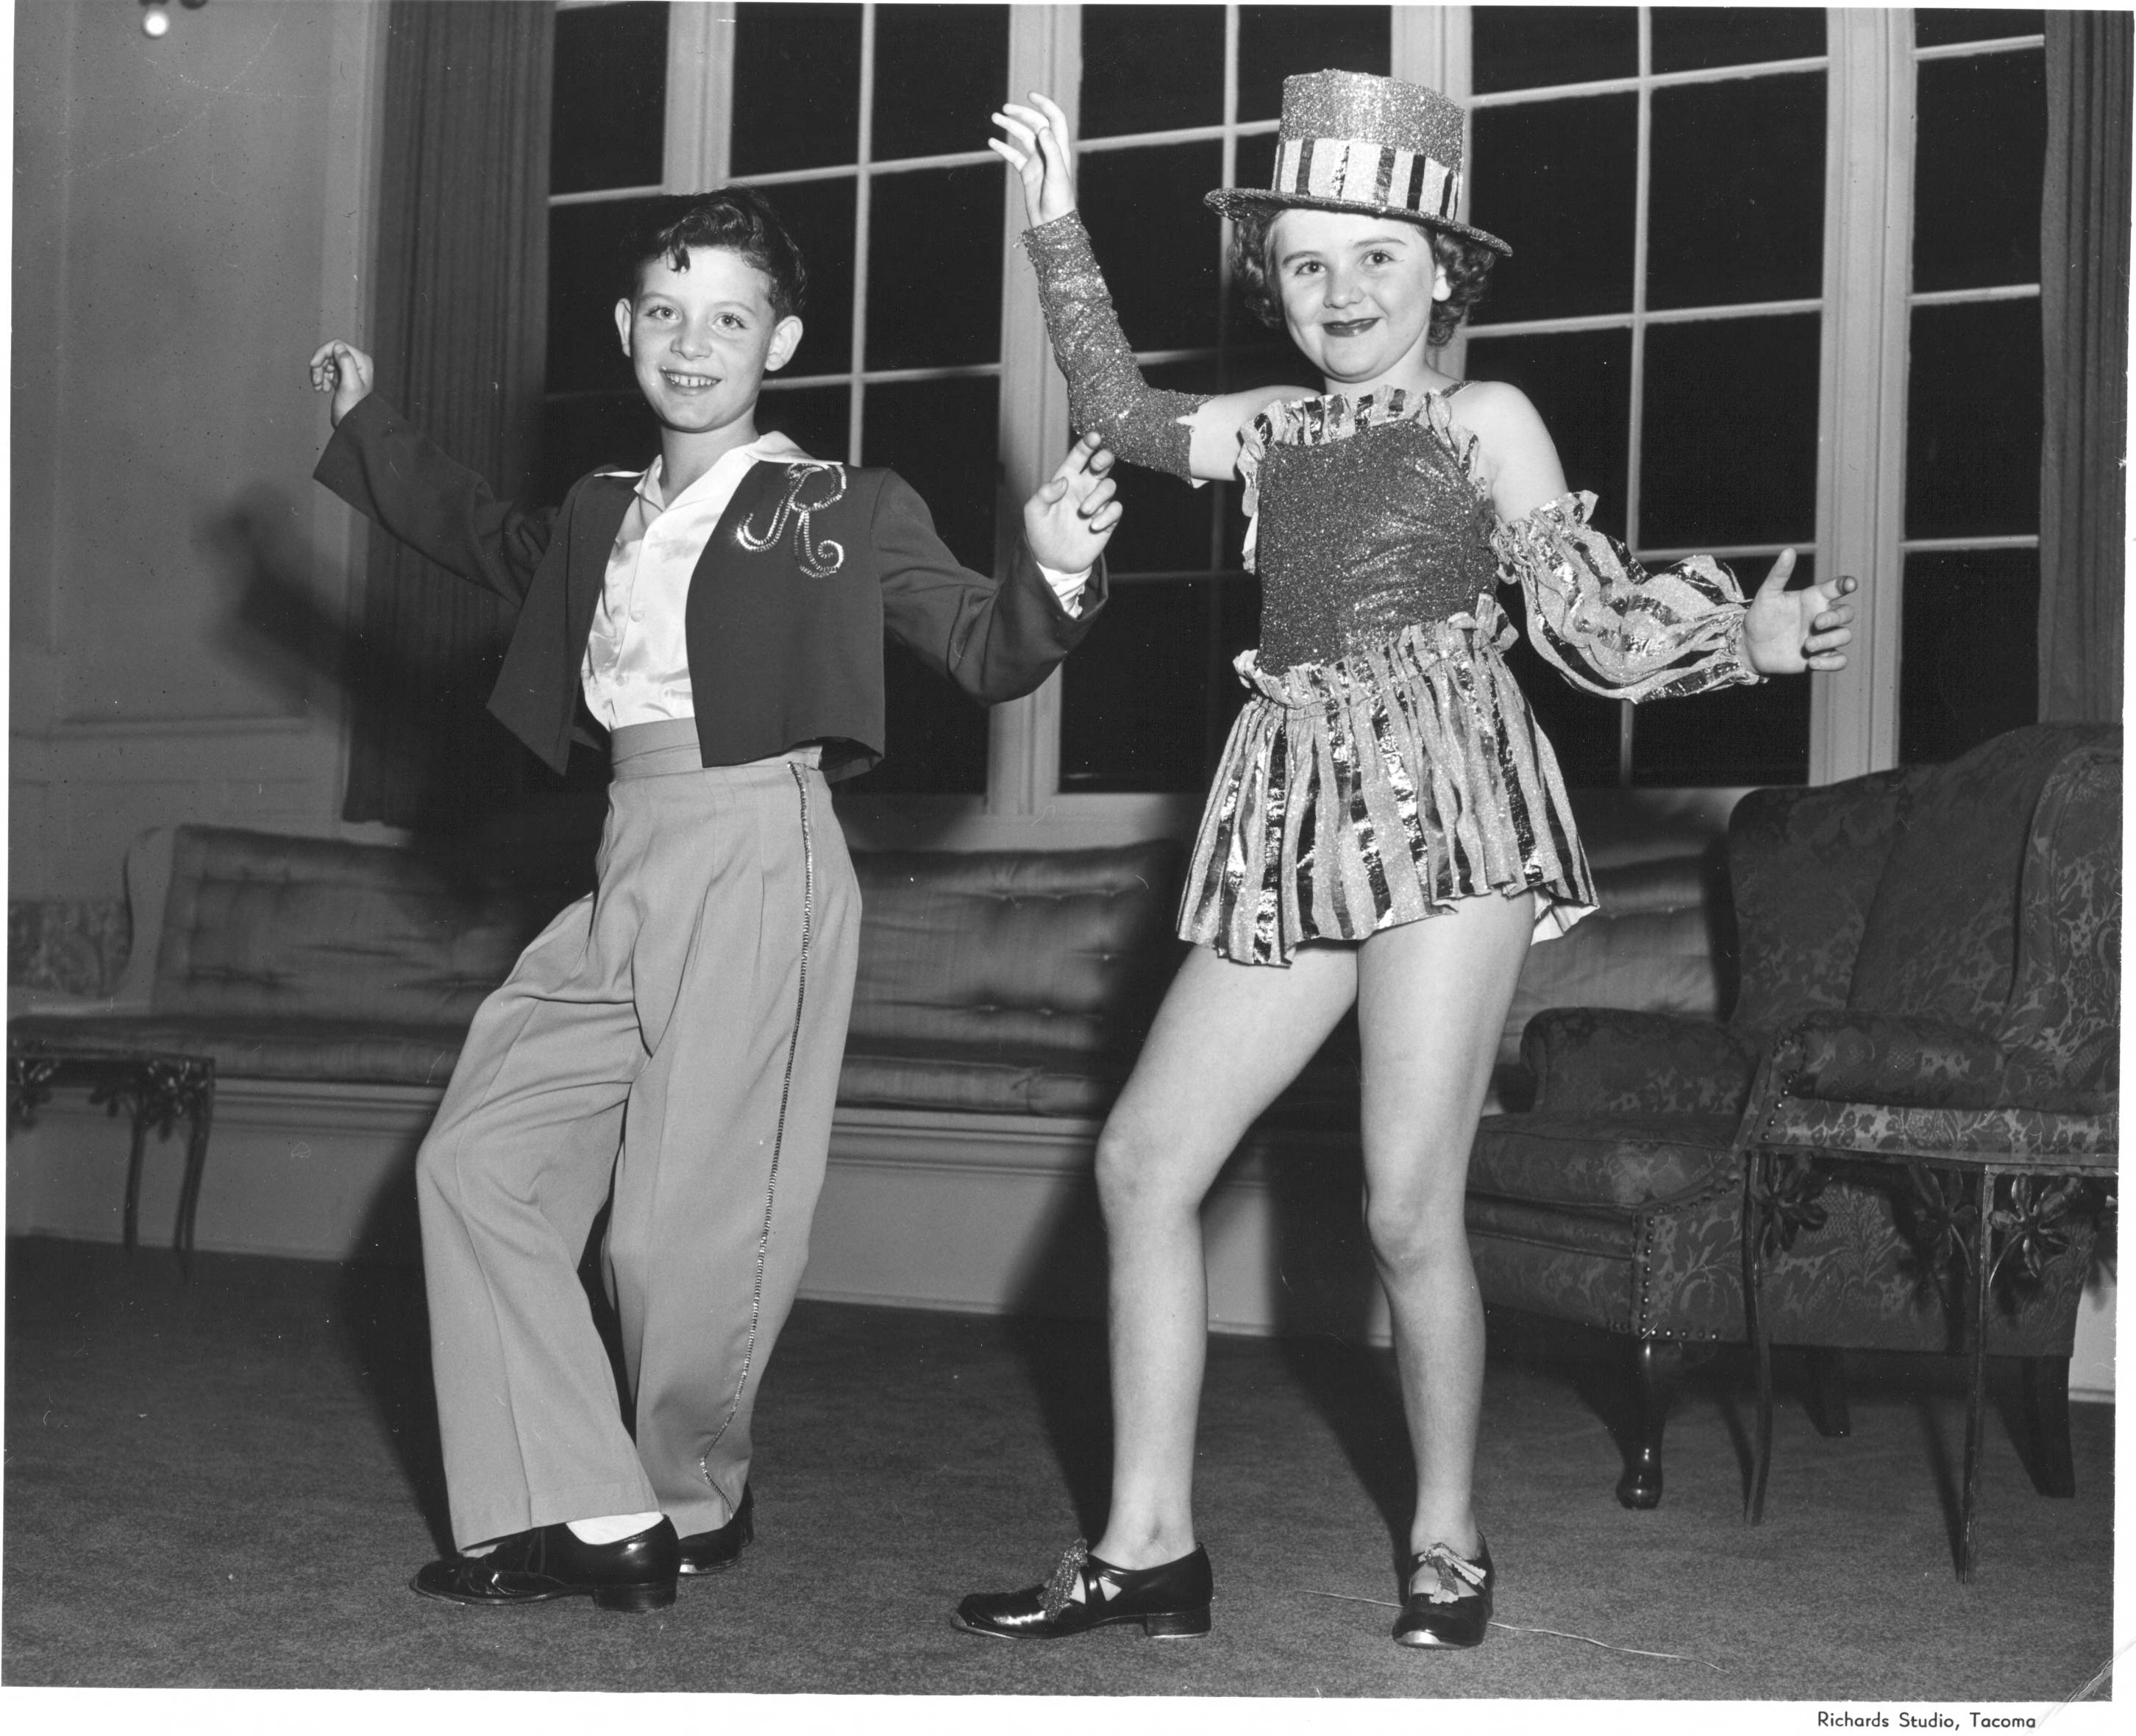 The Tacoma Country and Golf Club had a Halloween party for the children of members in 1951. Two children are shown in mid-step entertaining others; the girl has on a top hat sprinkled with glitter and sparkling short costume while the young boy has on a flamenco style outfit with a large R on his bolero.